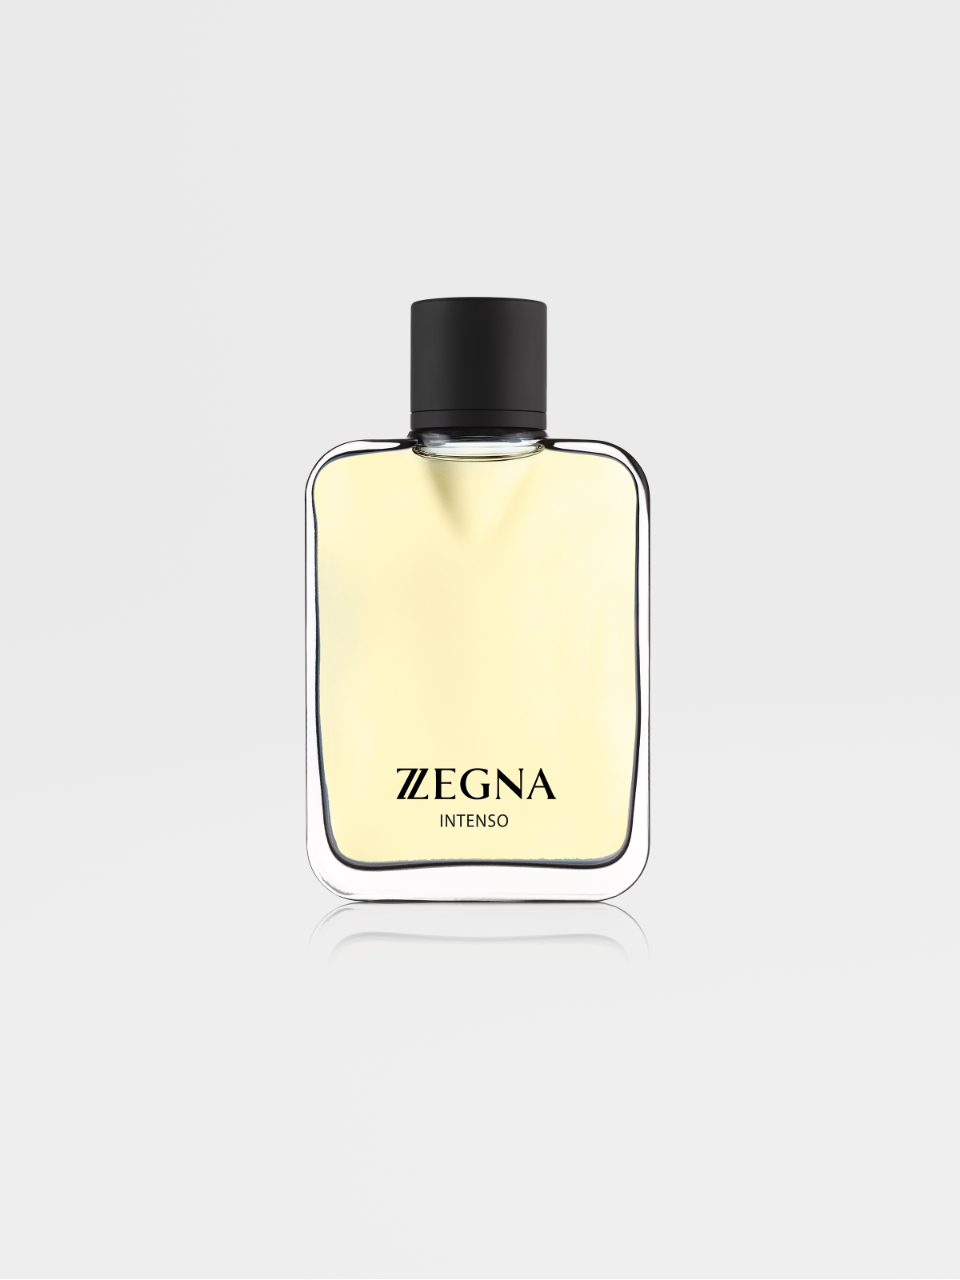 ZZegna Intenso 100ml